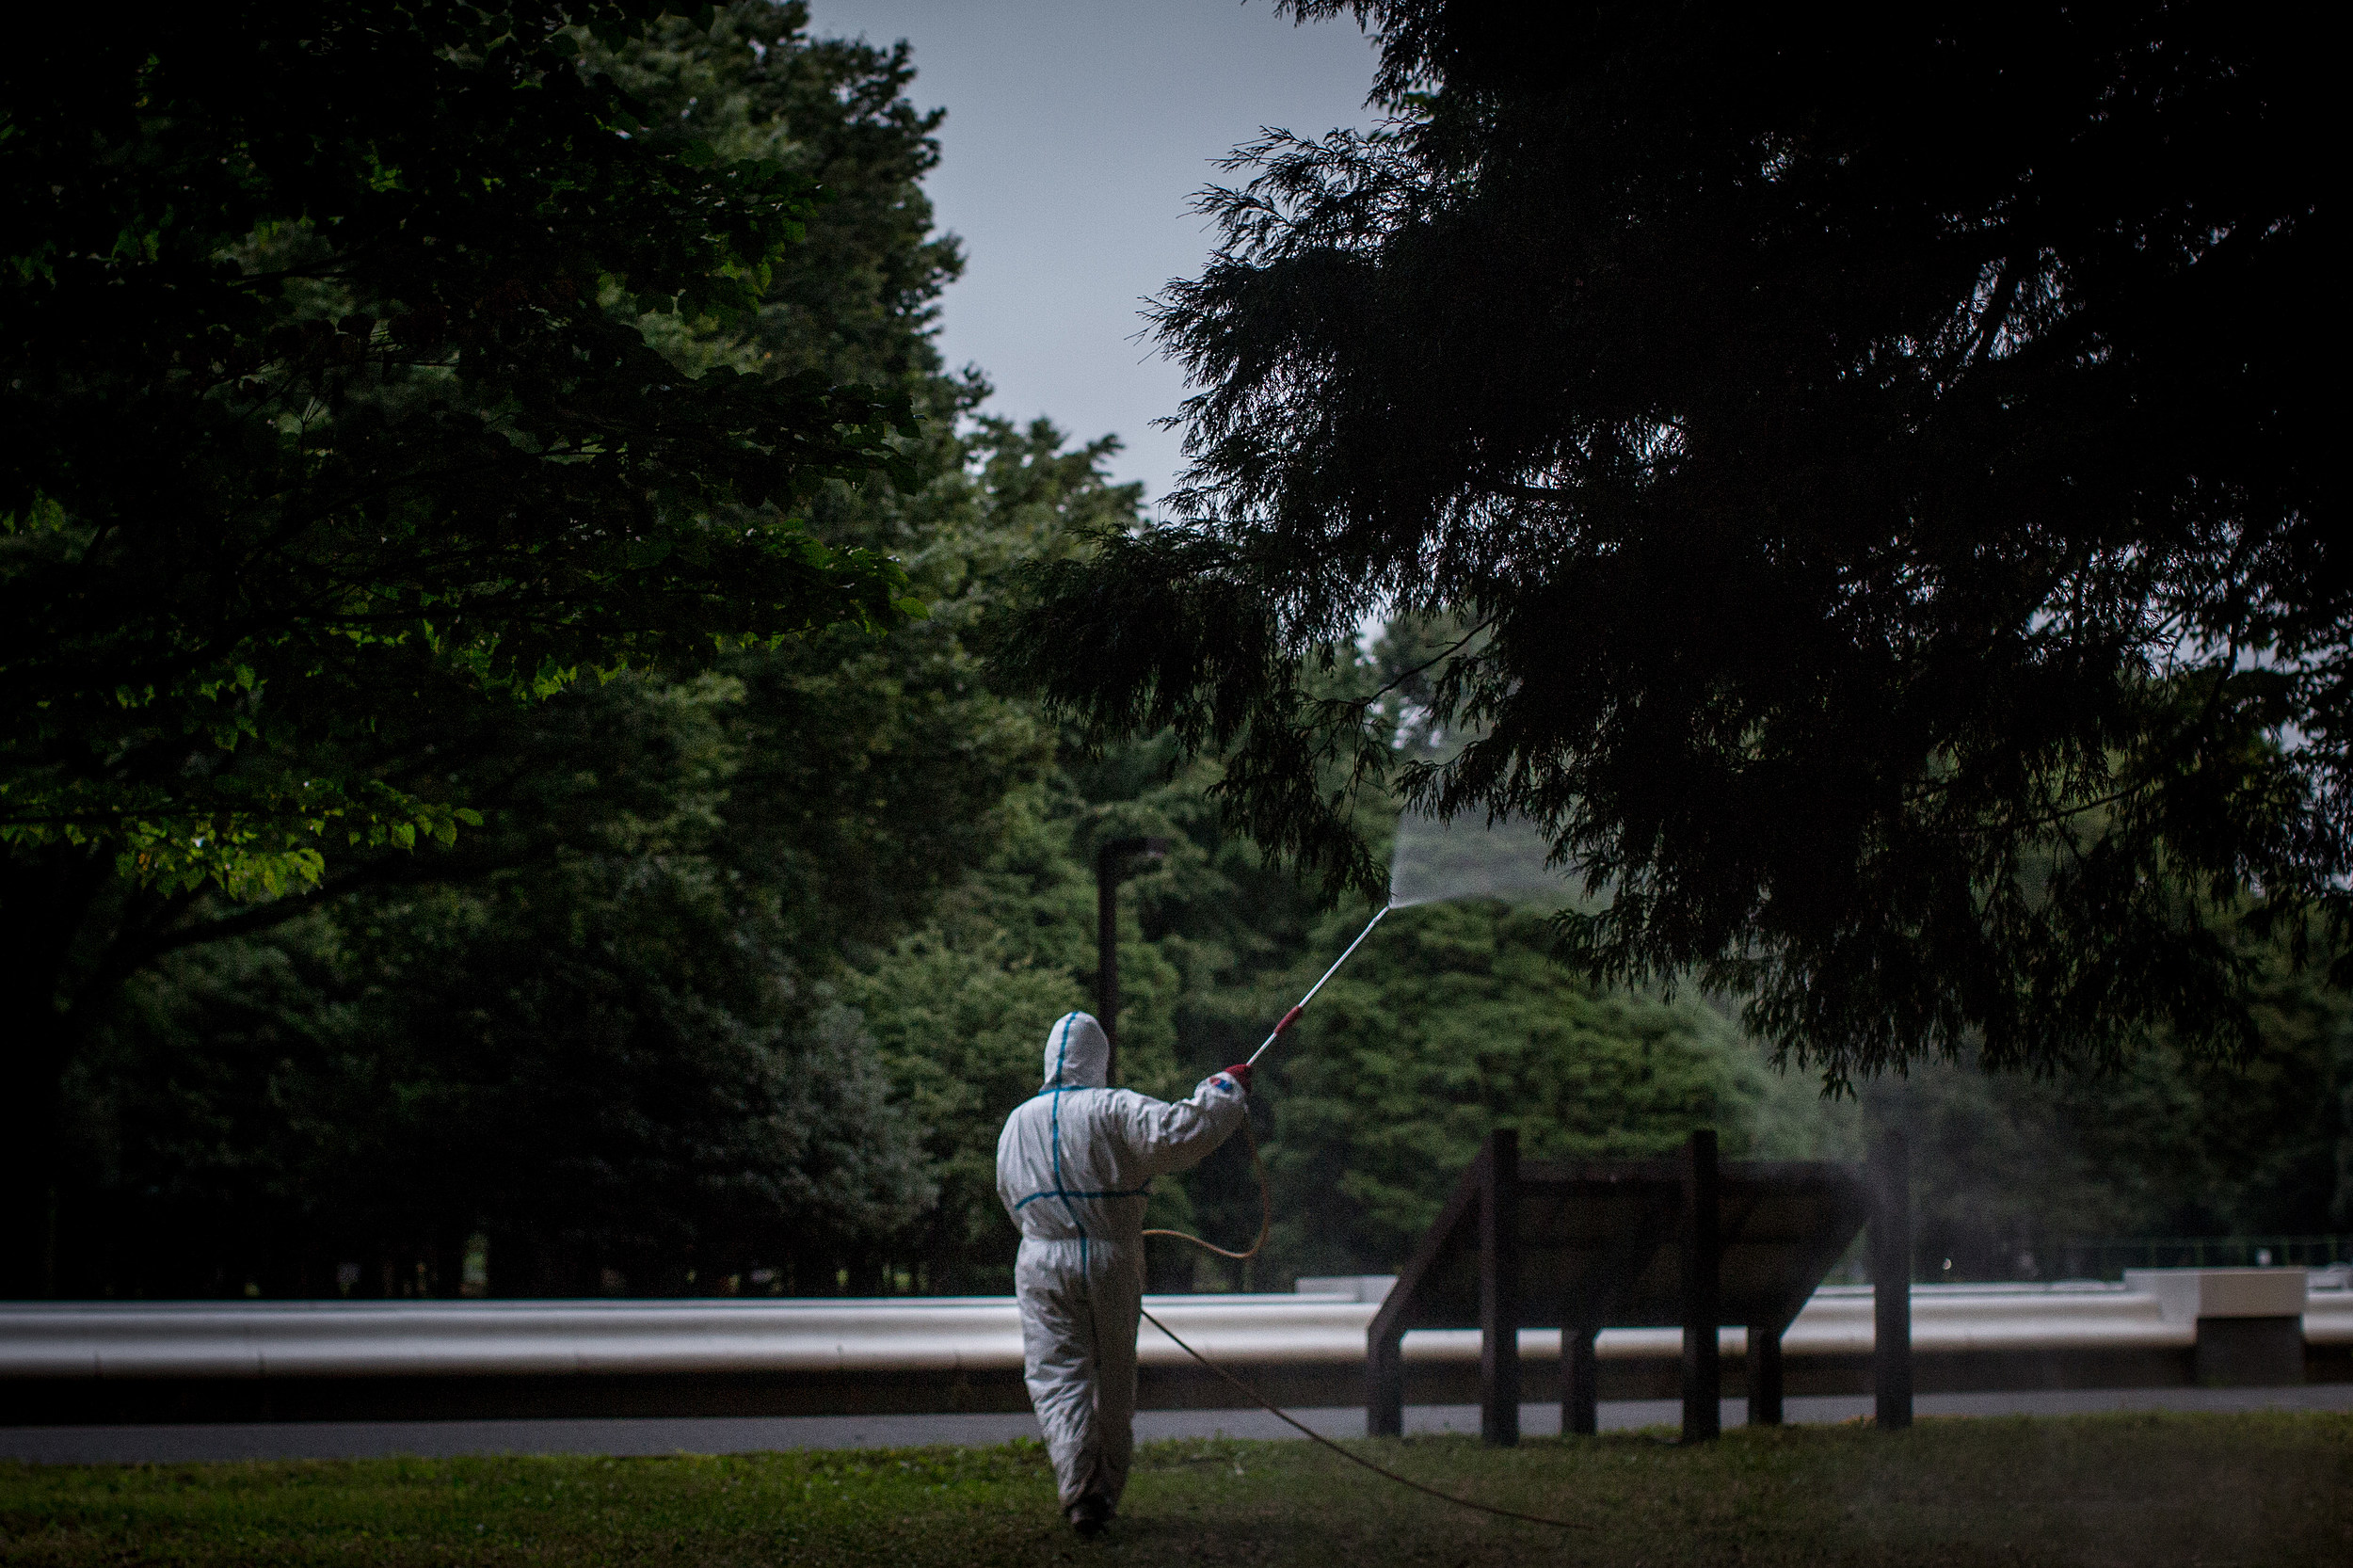 Japan Copes With First Dengue Fever Case In Nearly 70 Years